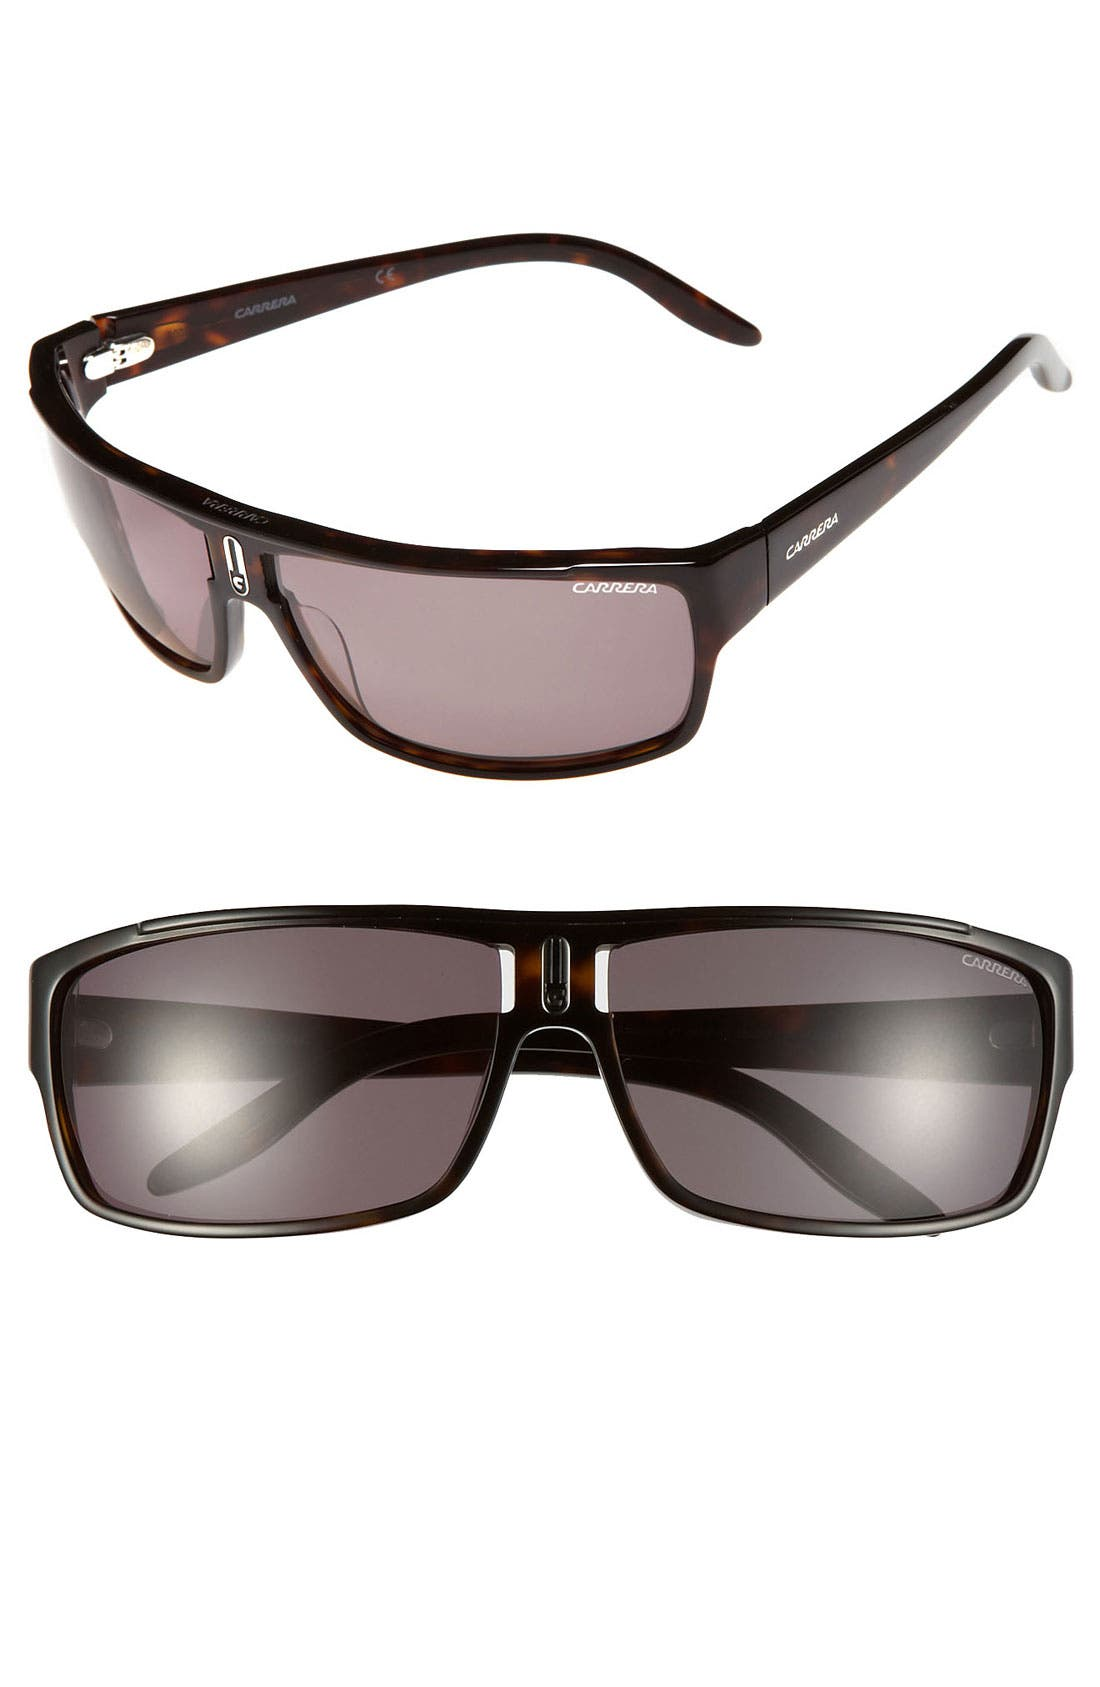 Alternate Image 1 Selected - Carrera Eyewear 65mm Sunglasses